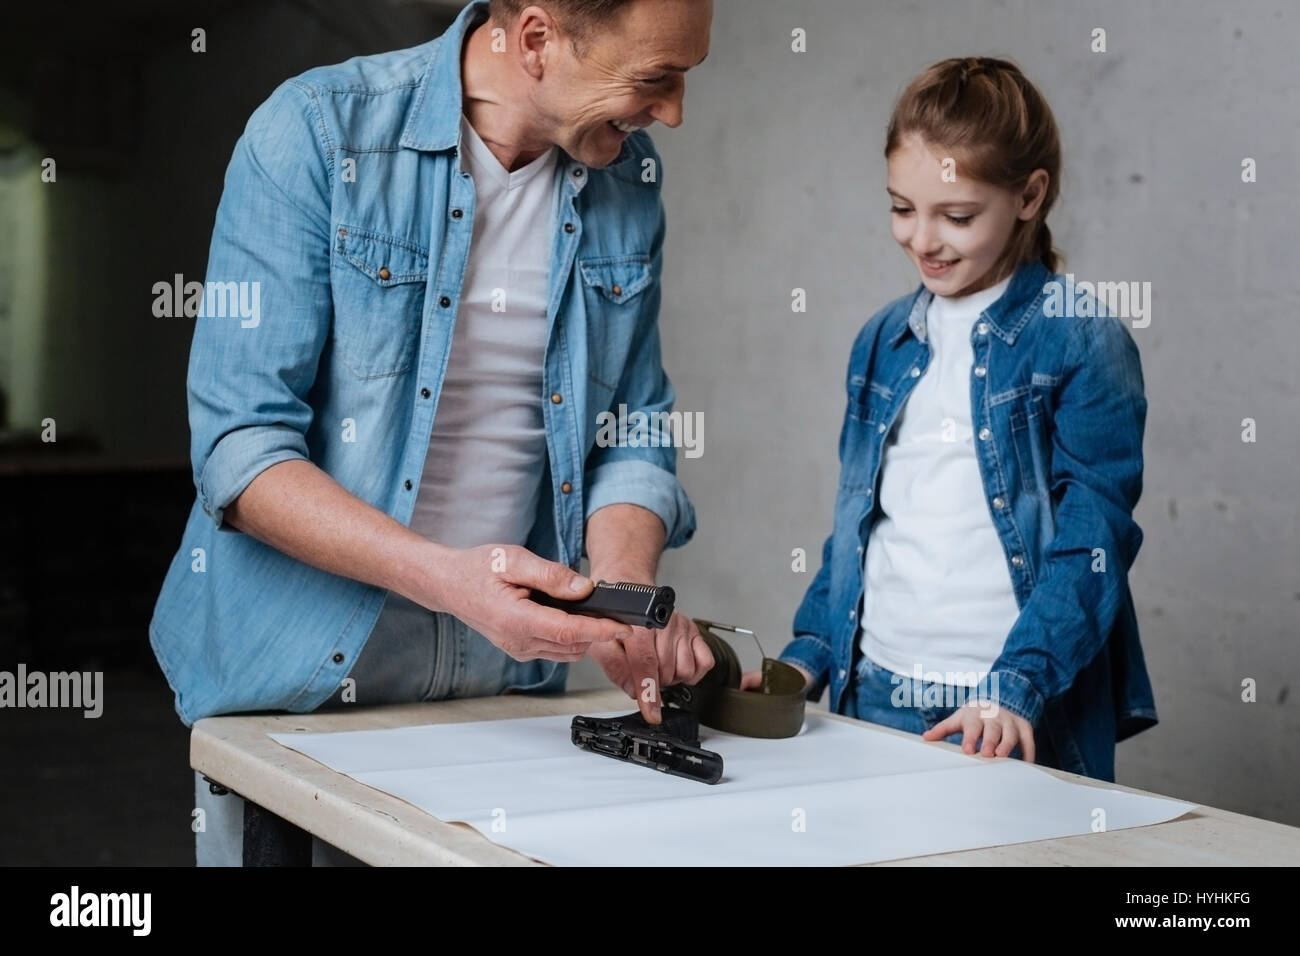 Delighted cheerful father pointing at the disassembled gun - Stock Image